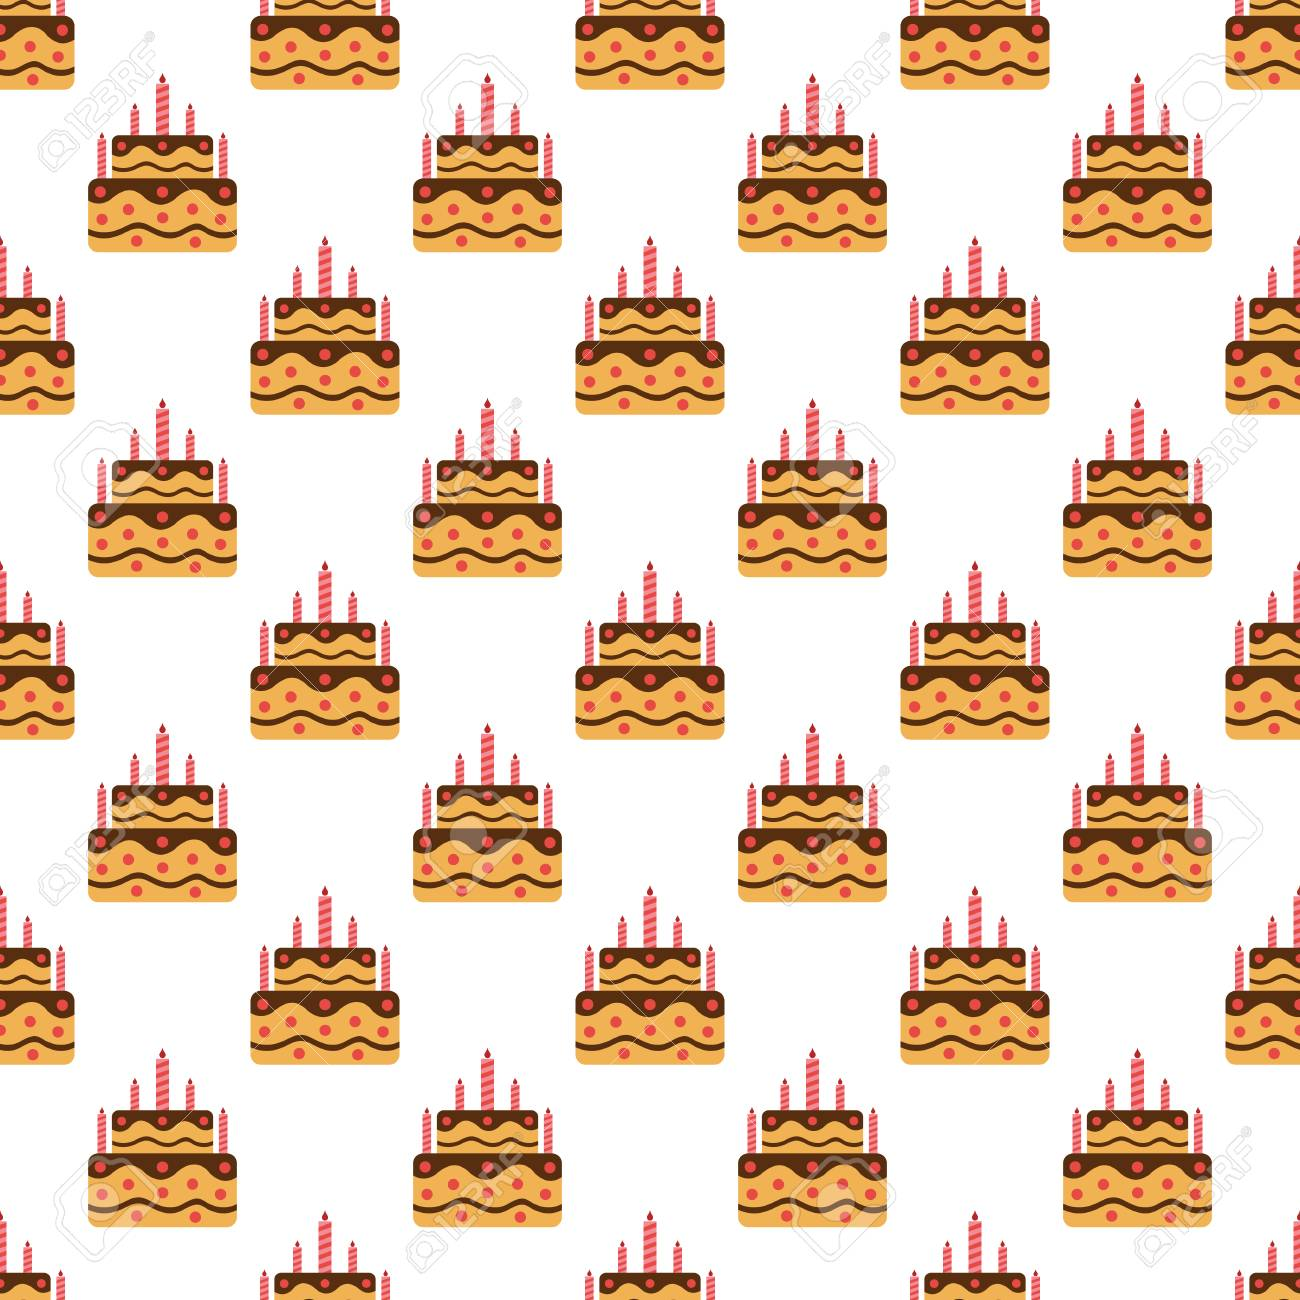 Birthday Cake Pattern Seamless Best For Any Design